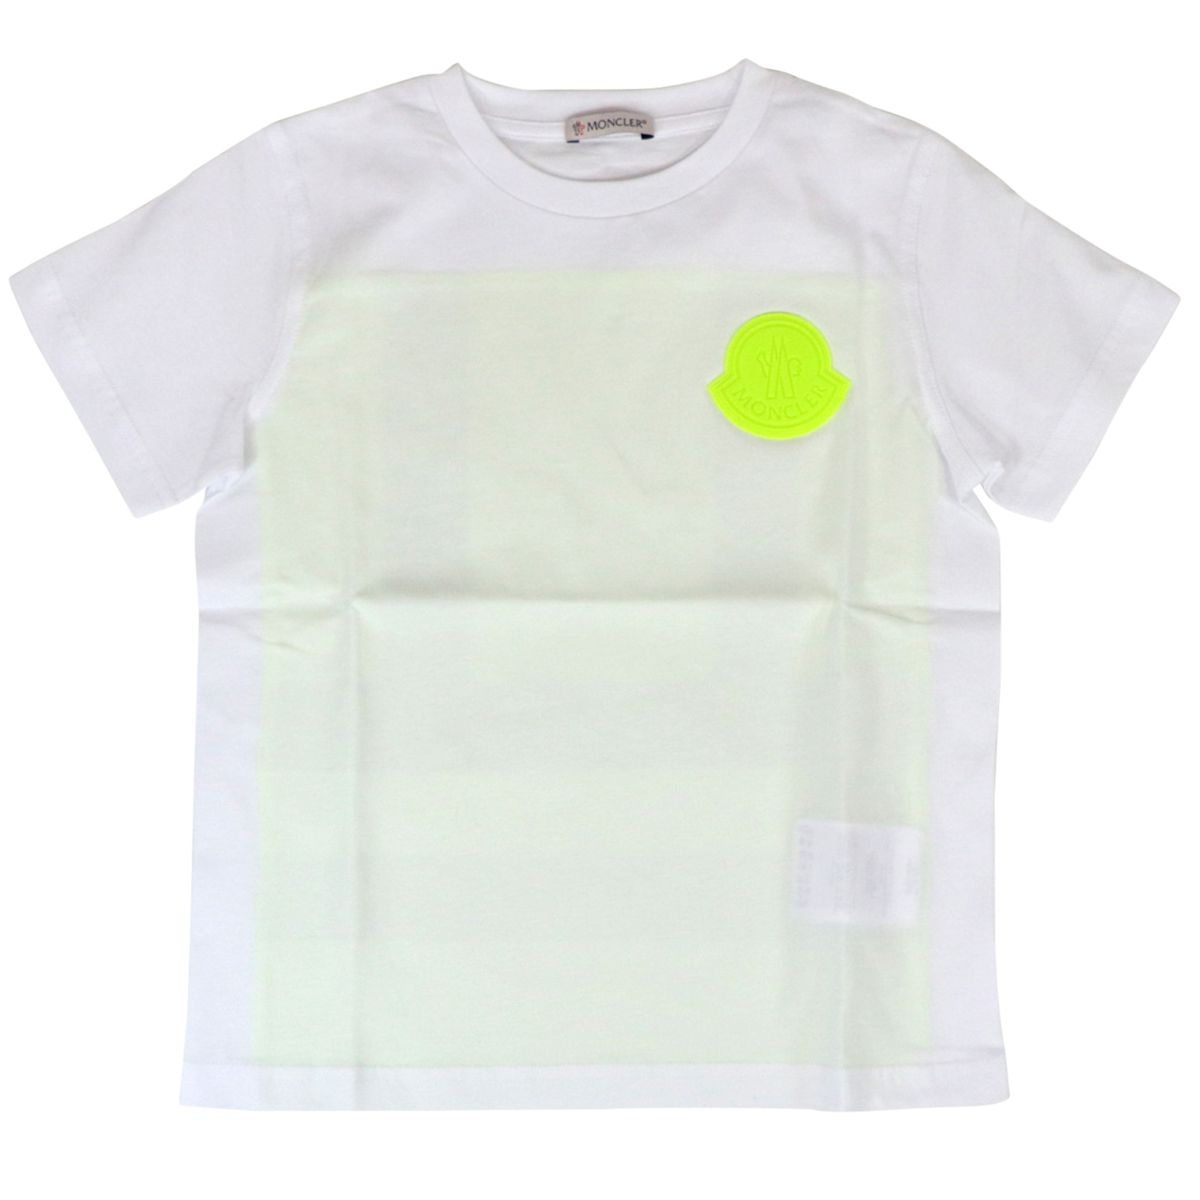 Cotton T-shirt with logo and fluorescent bands White Moncler